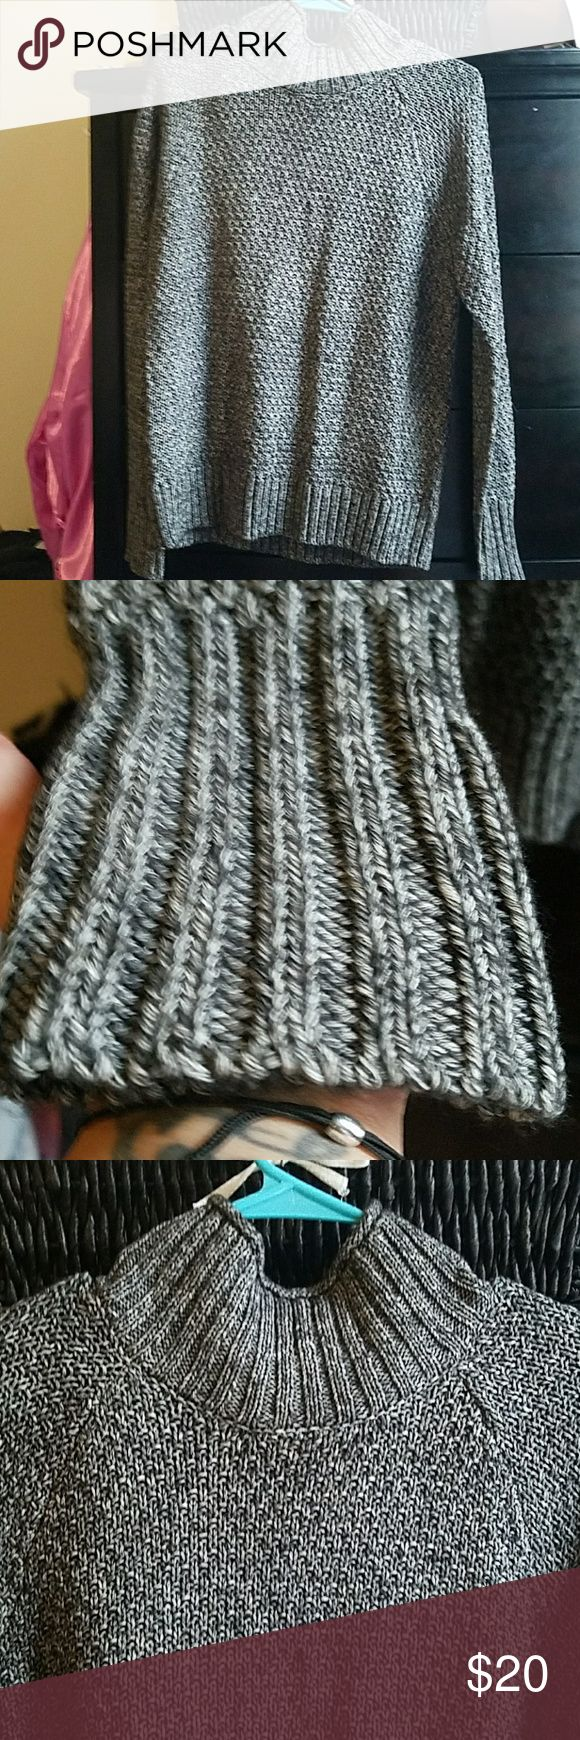 CHAPS WOMEN'S TURTLENECK/SLIGHT COWL NECK SWEATER 80% cotton,  20% acrylic charcoal, black and white knitted sweater. PERFECT CONDITION WORN ONCE  Fits somewhat loosely, I prefer my sweaters a little baggy, this is the perfect sweater for the upcoming fall & winter! Chaps Sweaters Cowl & Turtlenecks